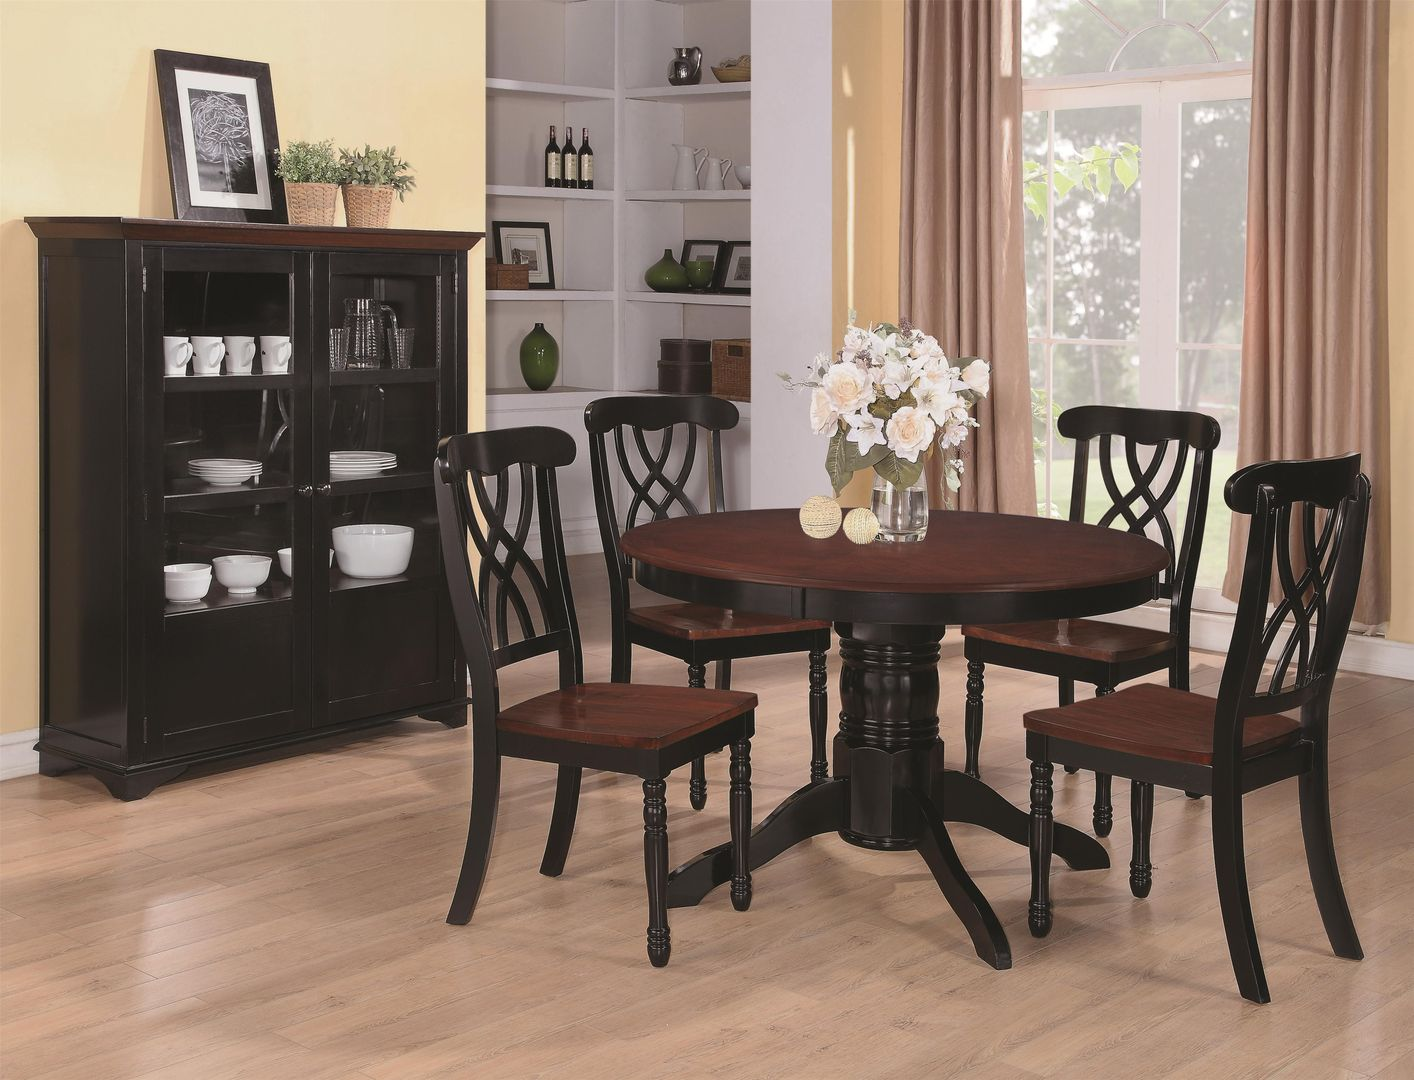 Coaster Addison 103700 Black Wood Dining Table In Los Angeles Ca